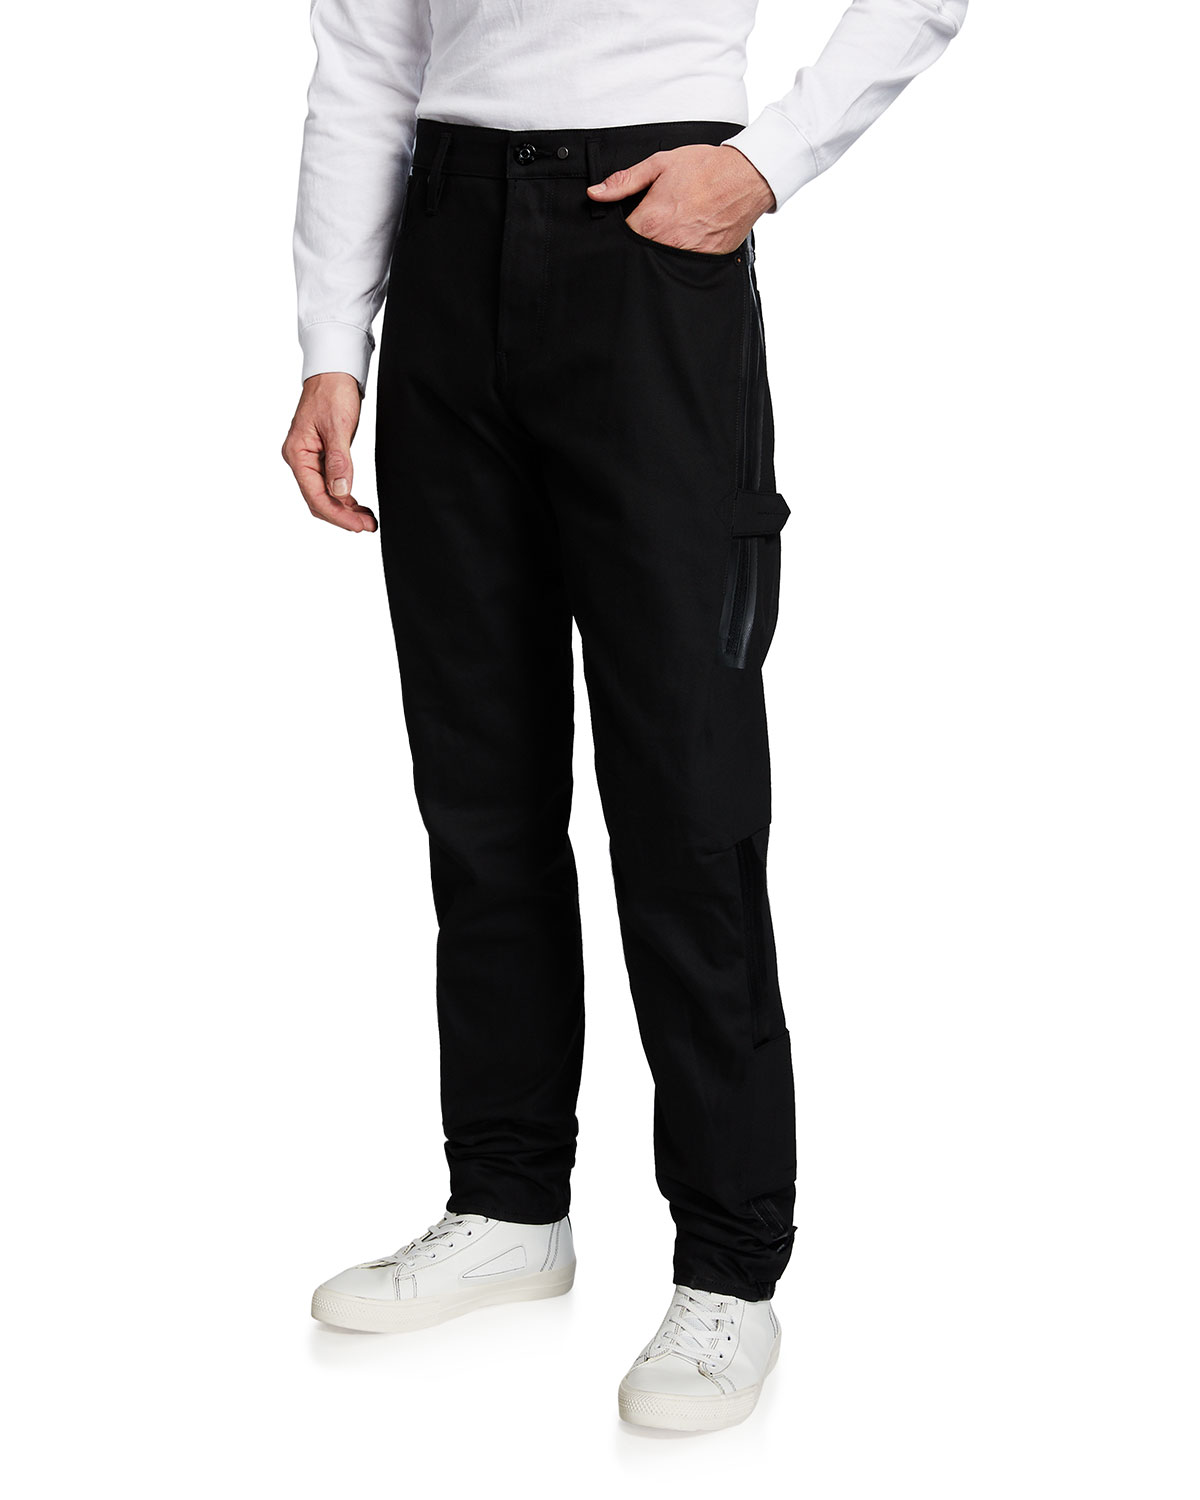 Men's Scutar Tapered High-Rise Jeans